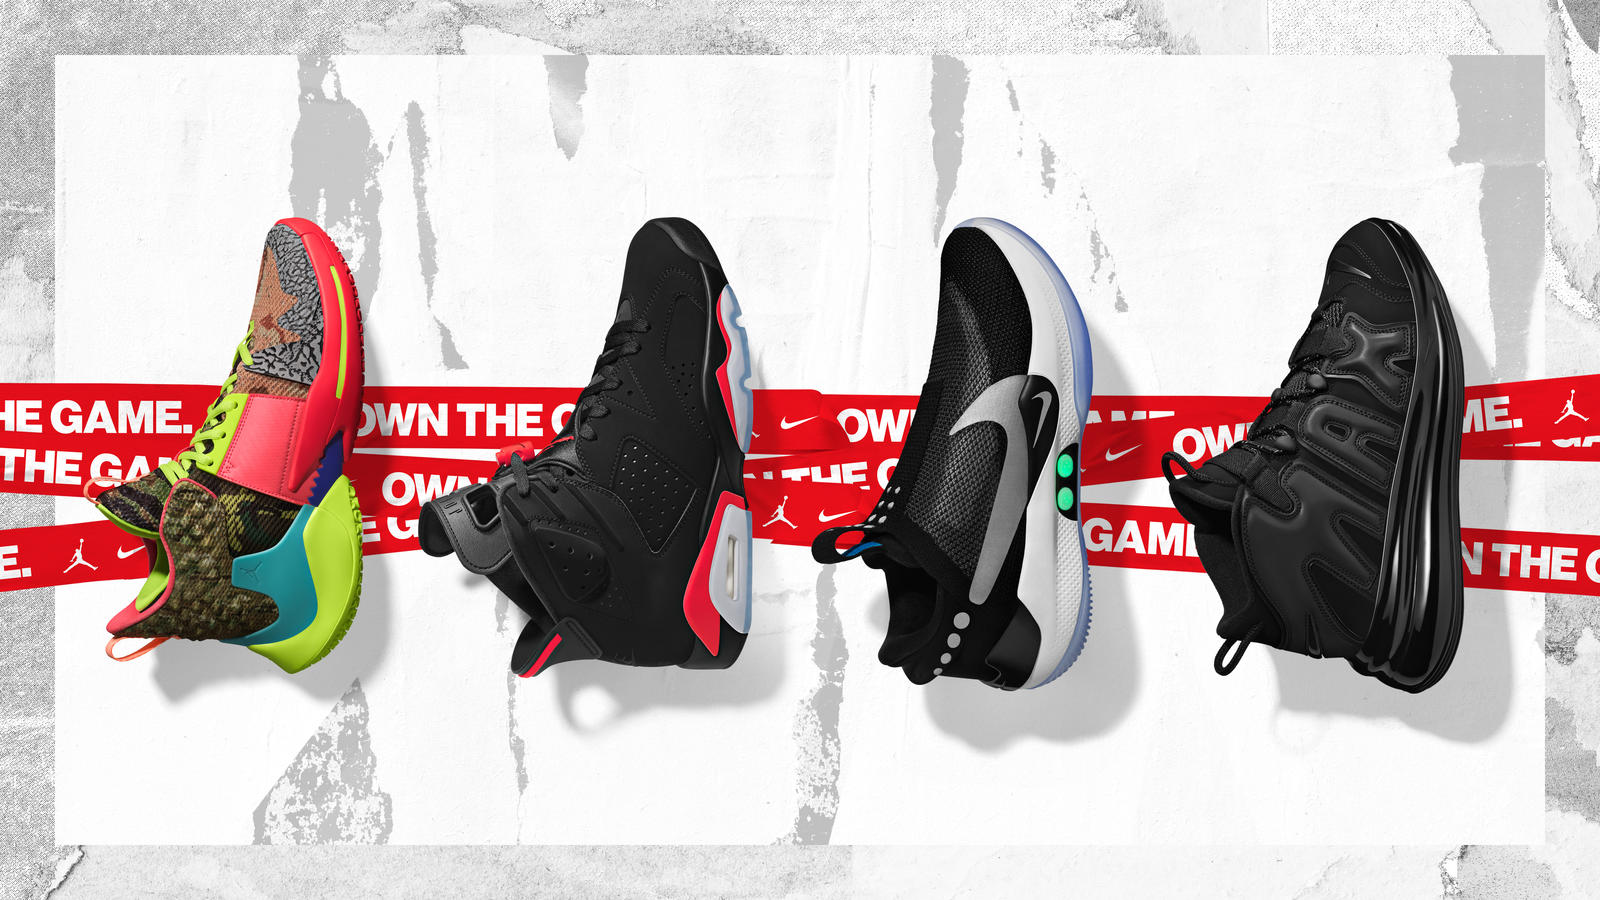 3b0fa85d1b Nike and Jordan Brand's 2019 NBA All-Star Footwear Drops - Nike News